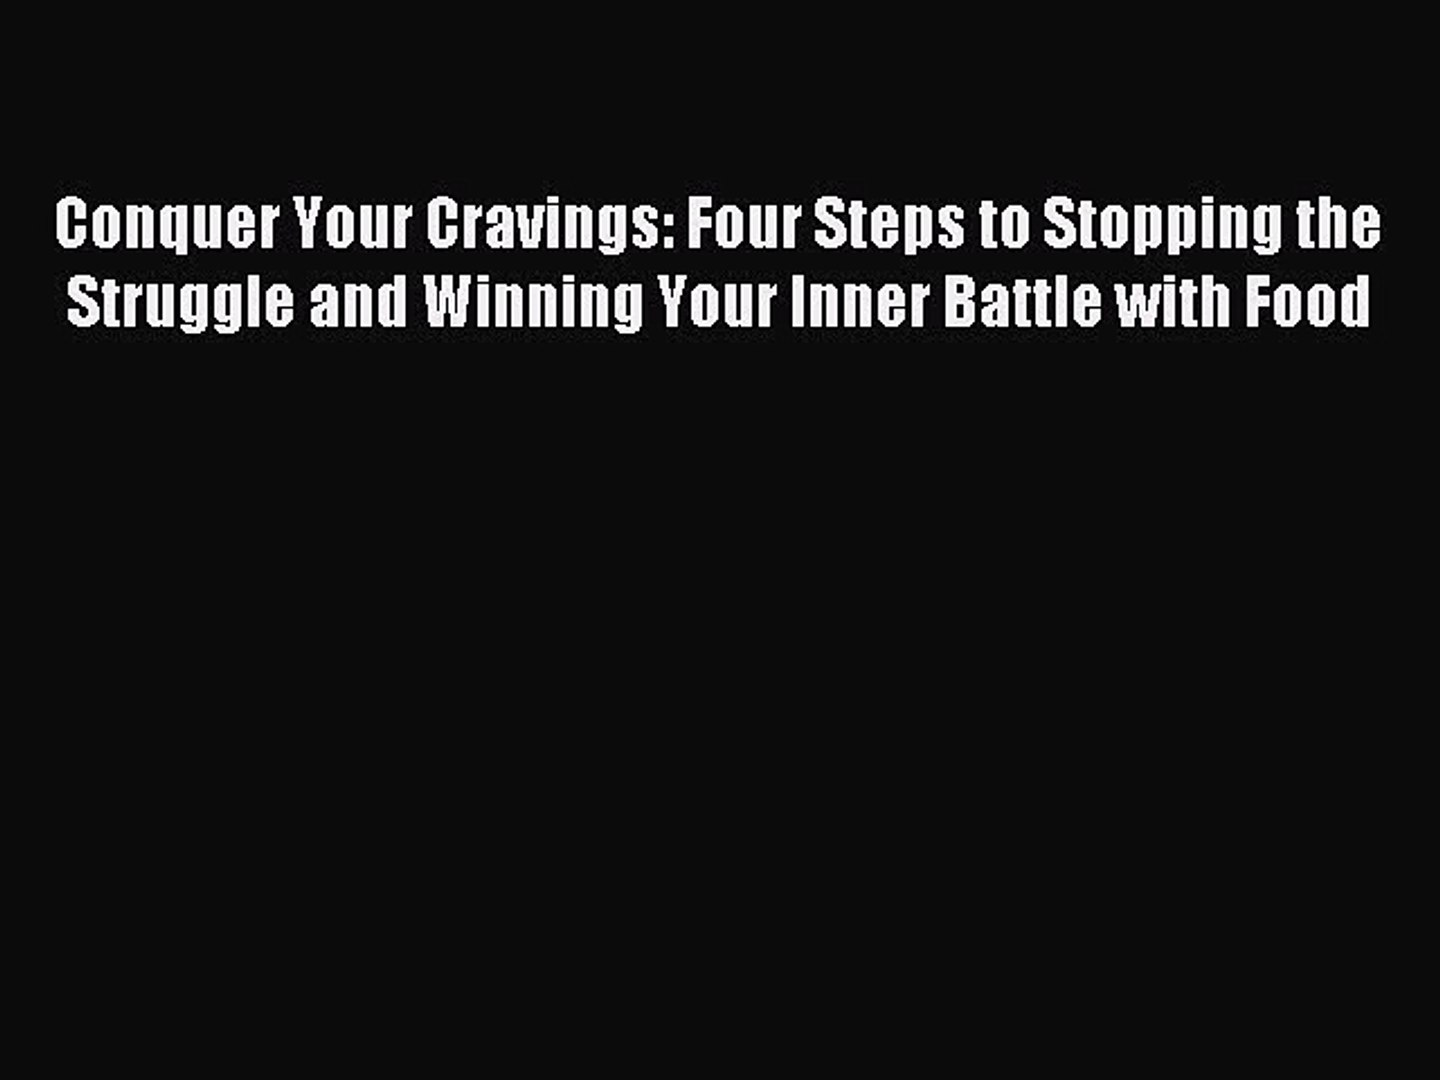 Conquer Your Cravings: 4 Steps to Stopping the Struggle and Winning Your Inner Battle with Foods